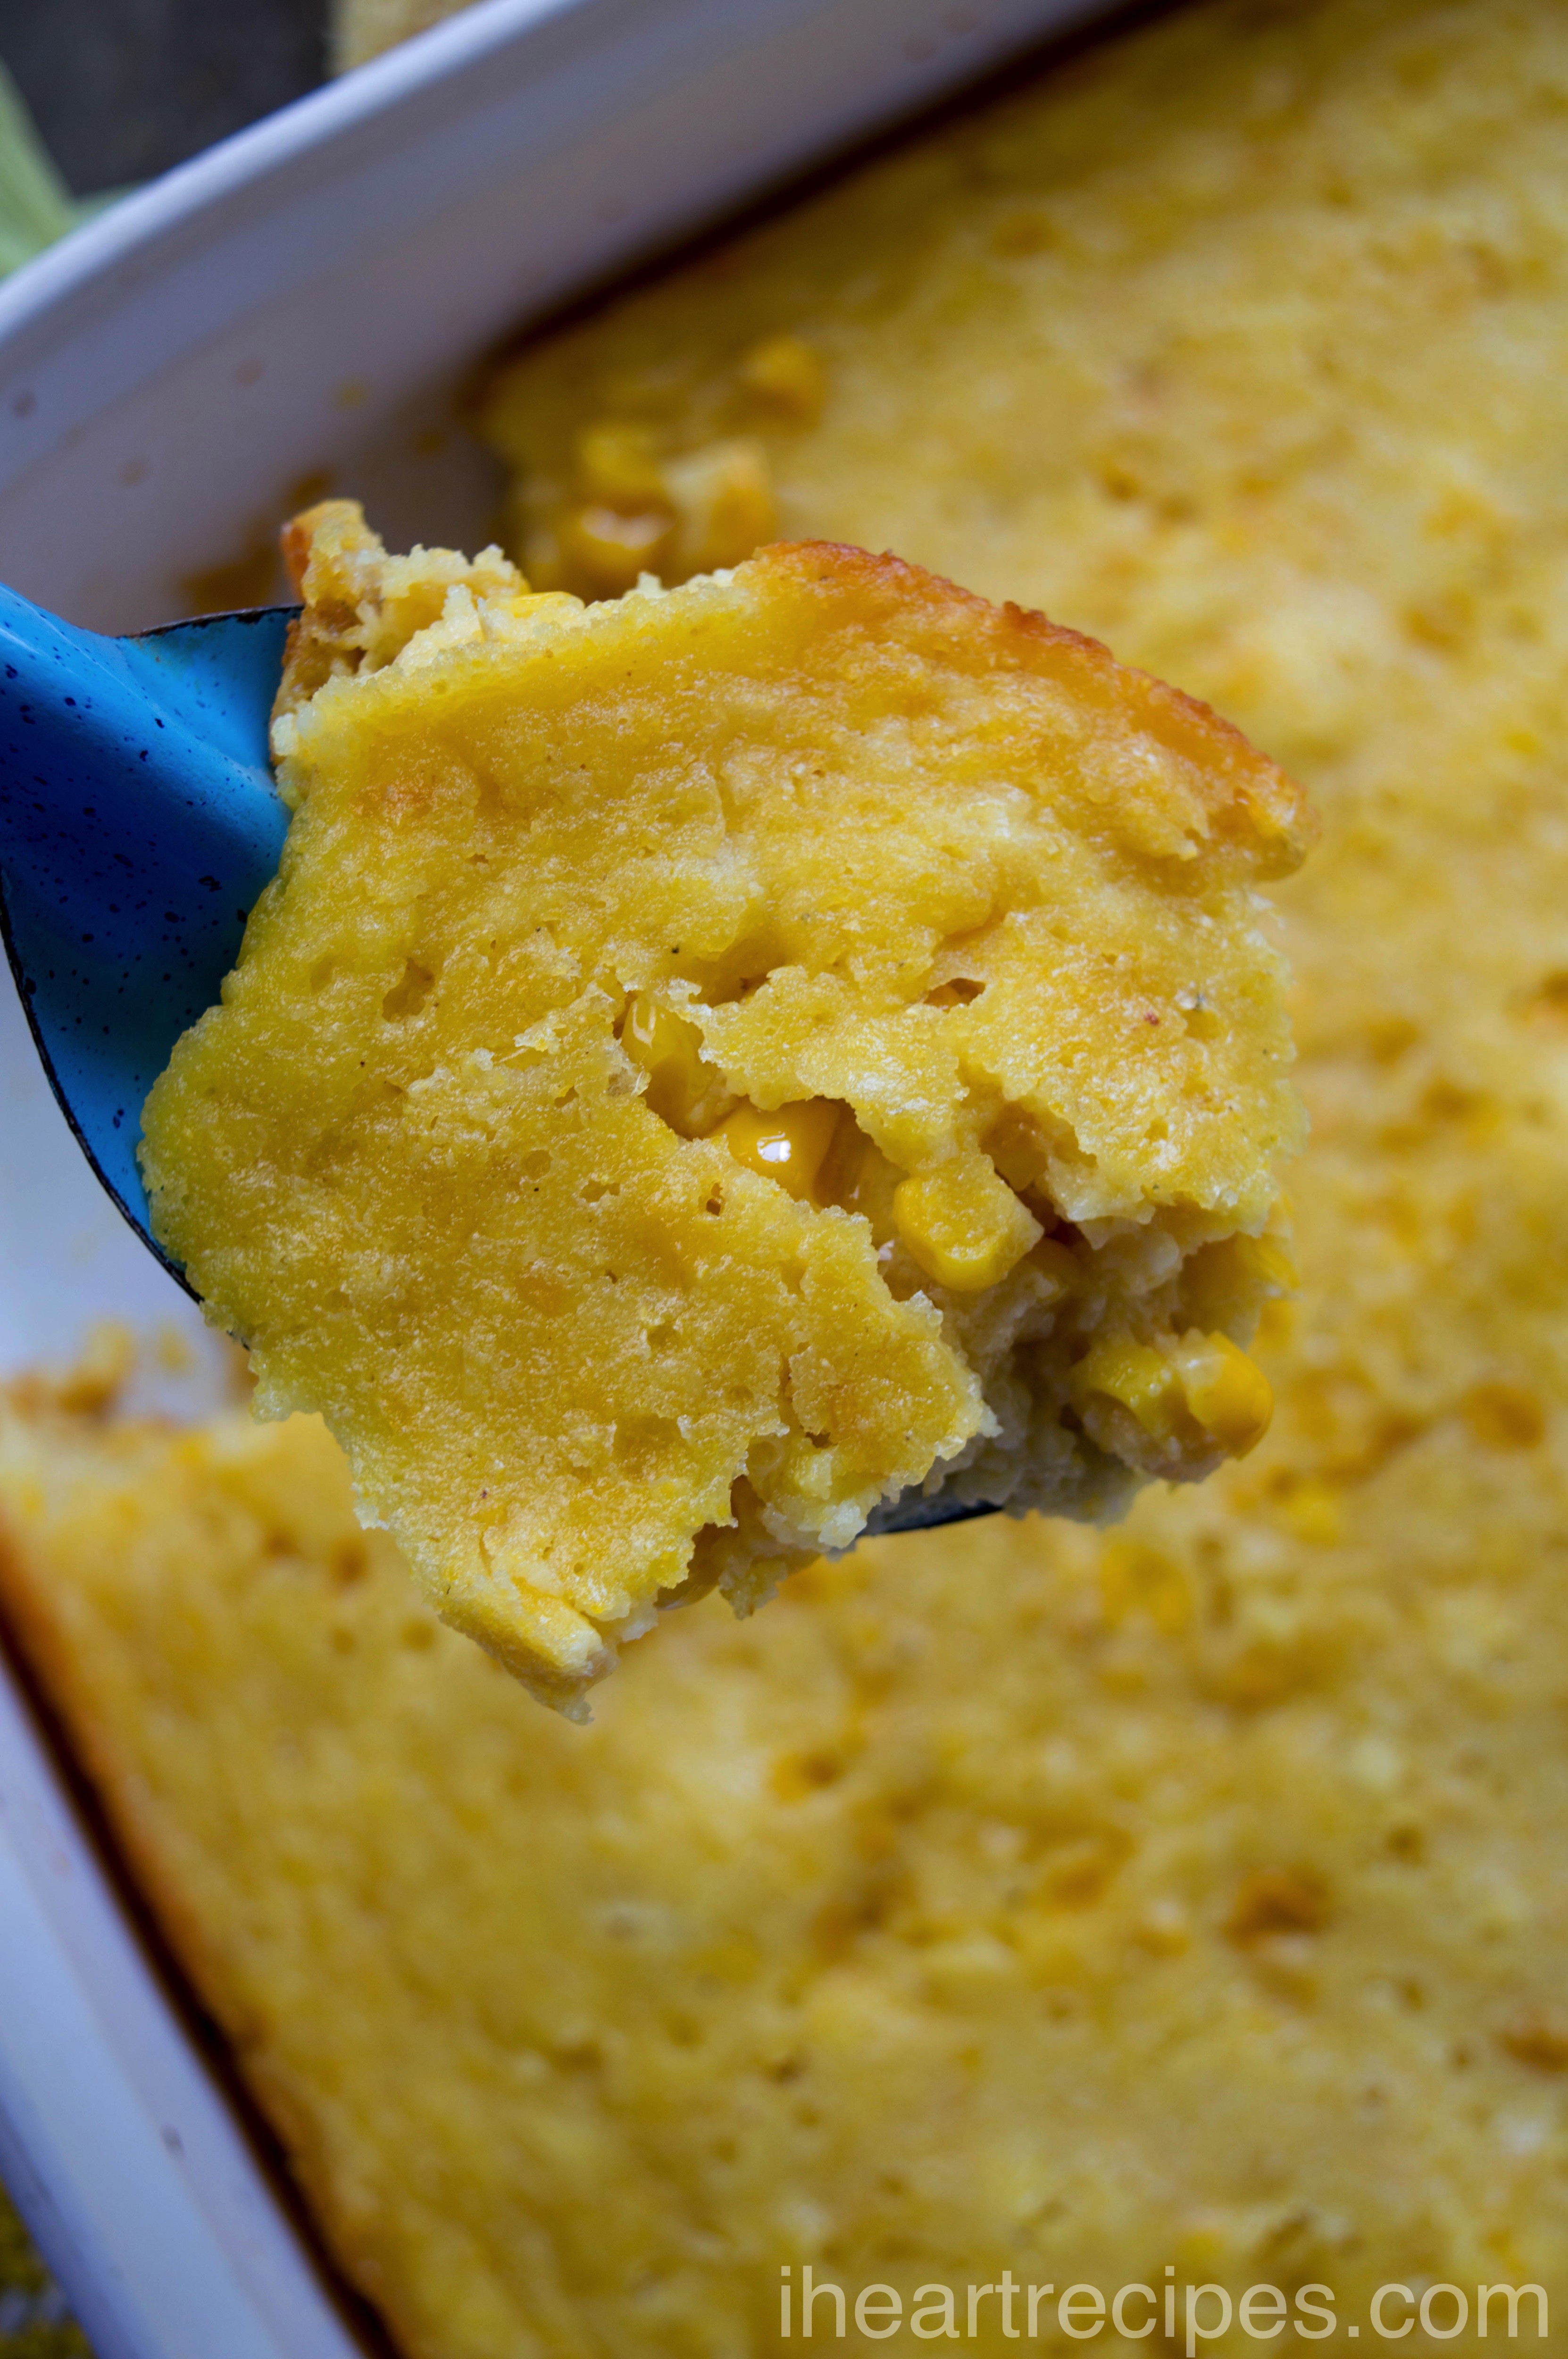 The pudding is then baked to give it a crust and more solid consistency.